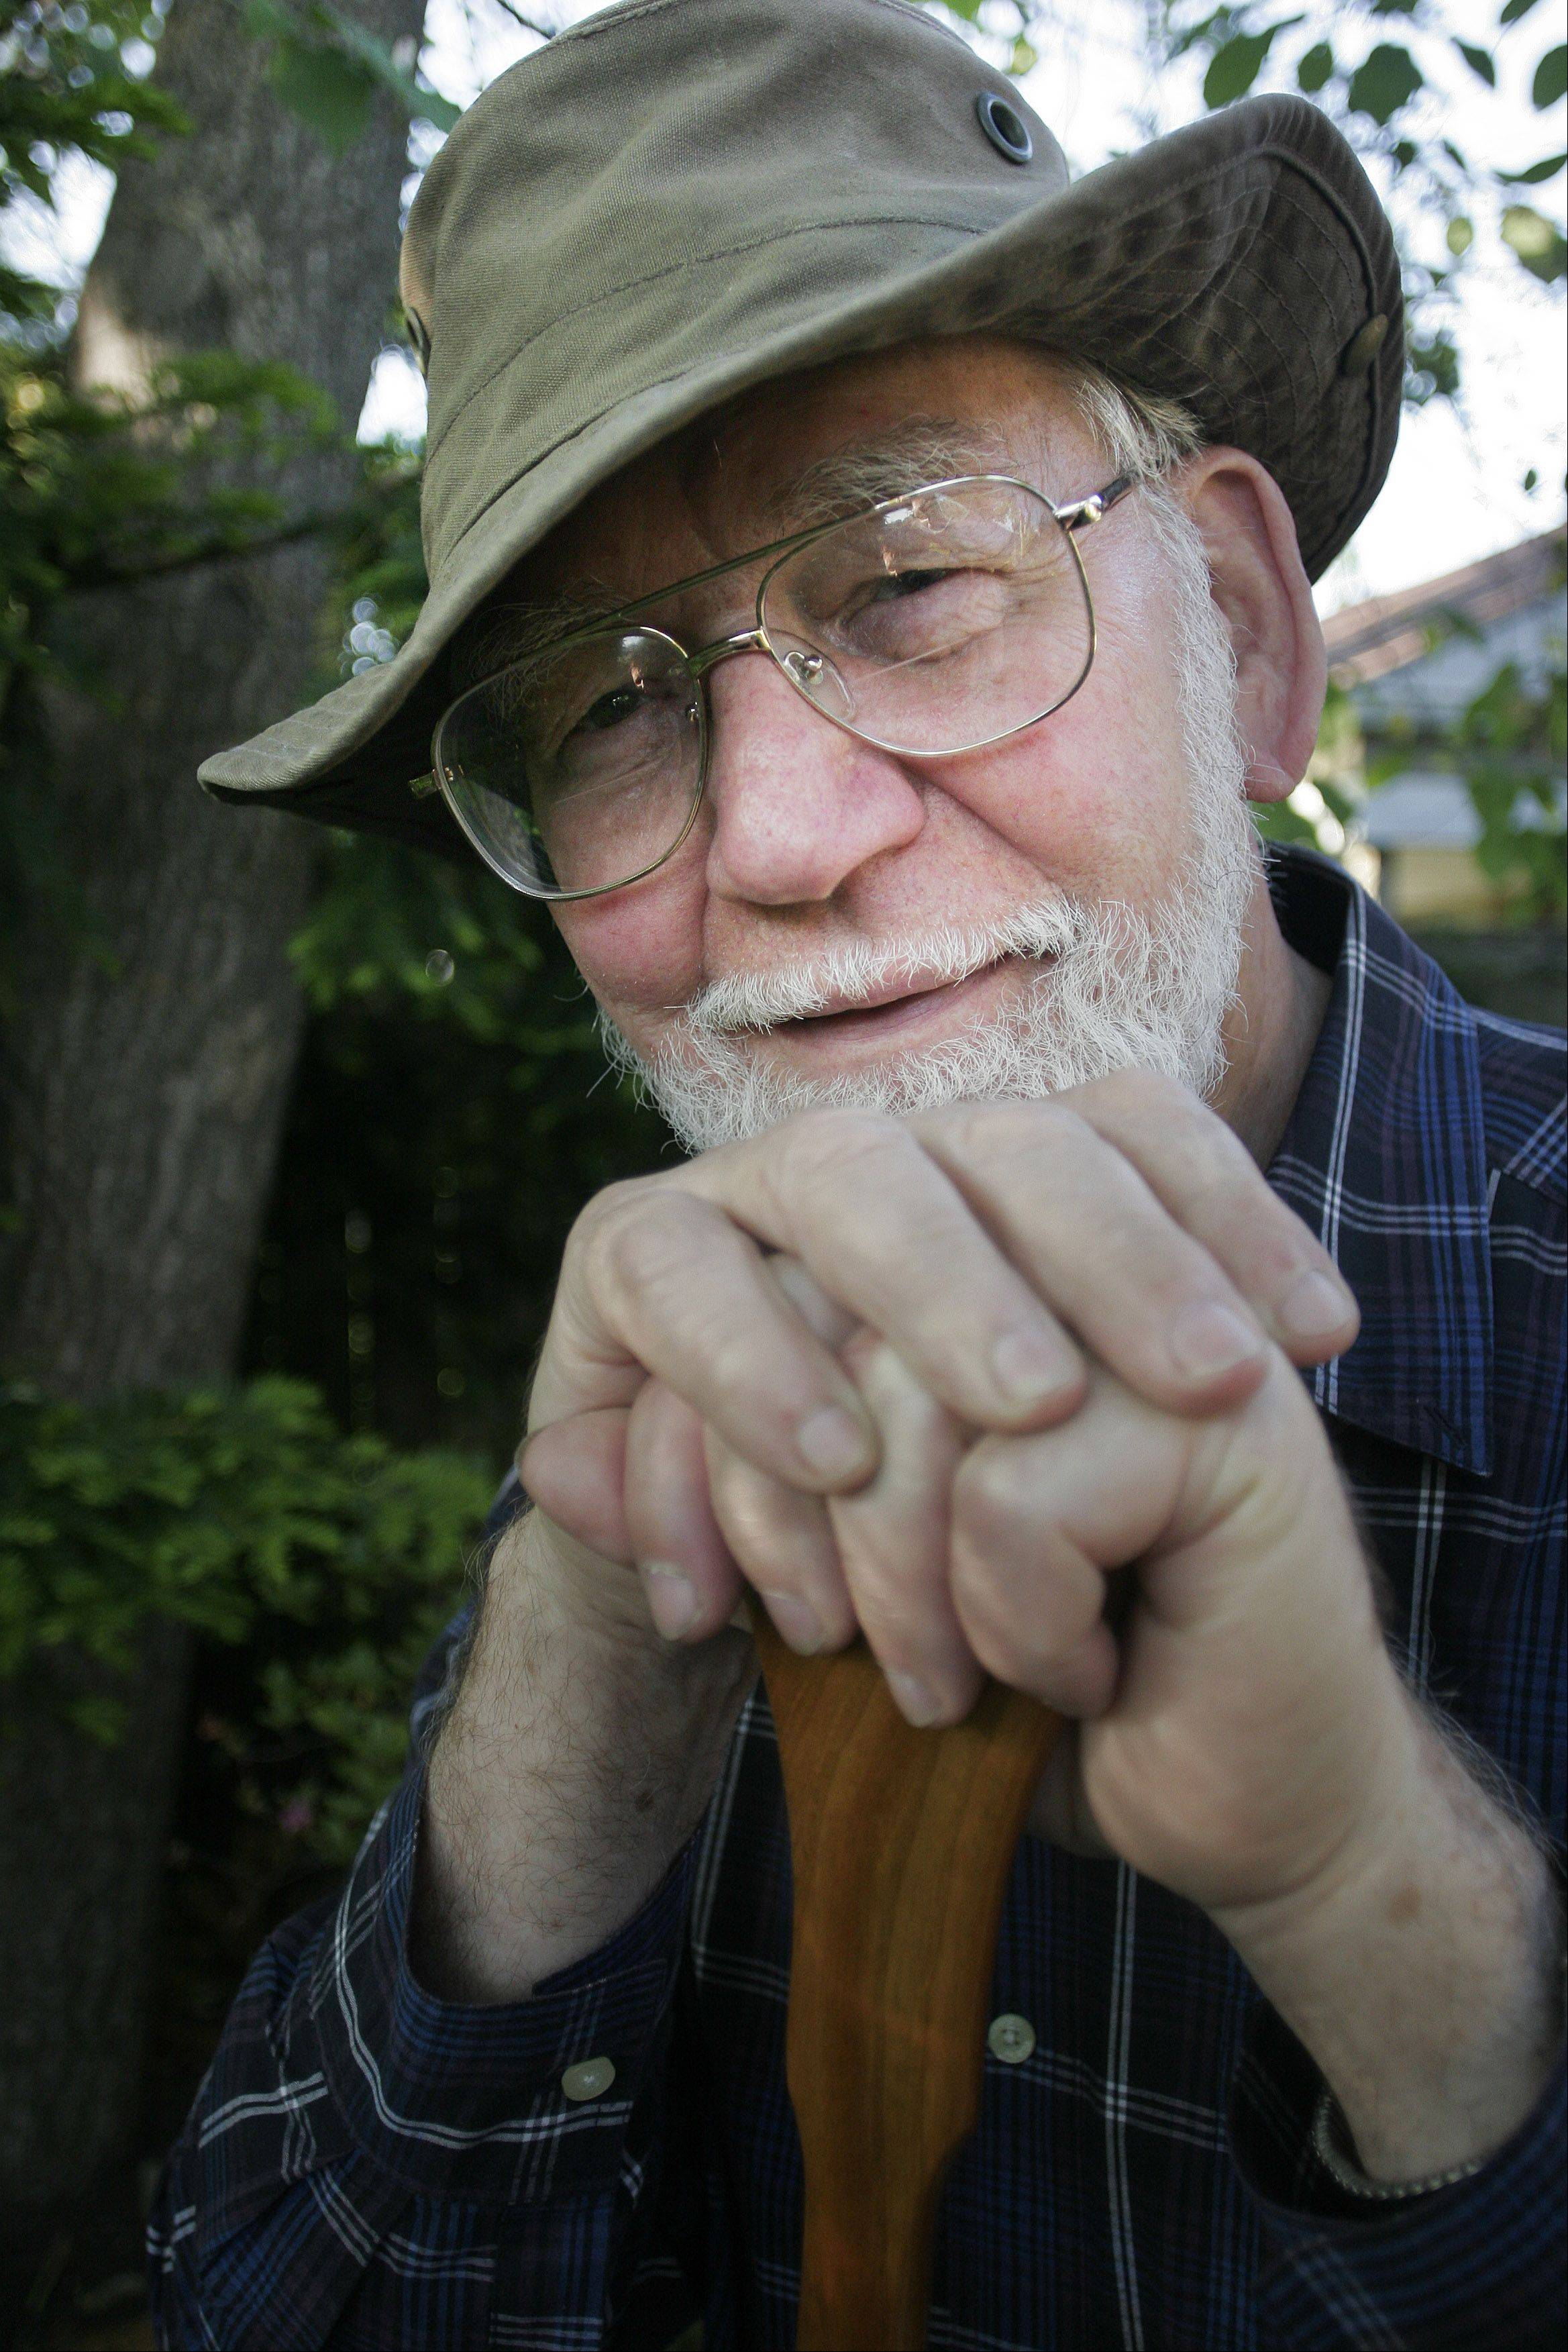 Ralph Frese, who founded the Des Plaines River Canoe Marathon, died this week at 86.